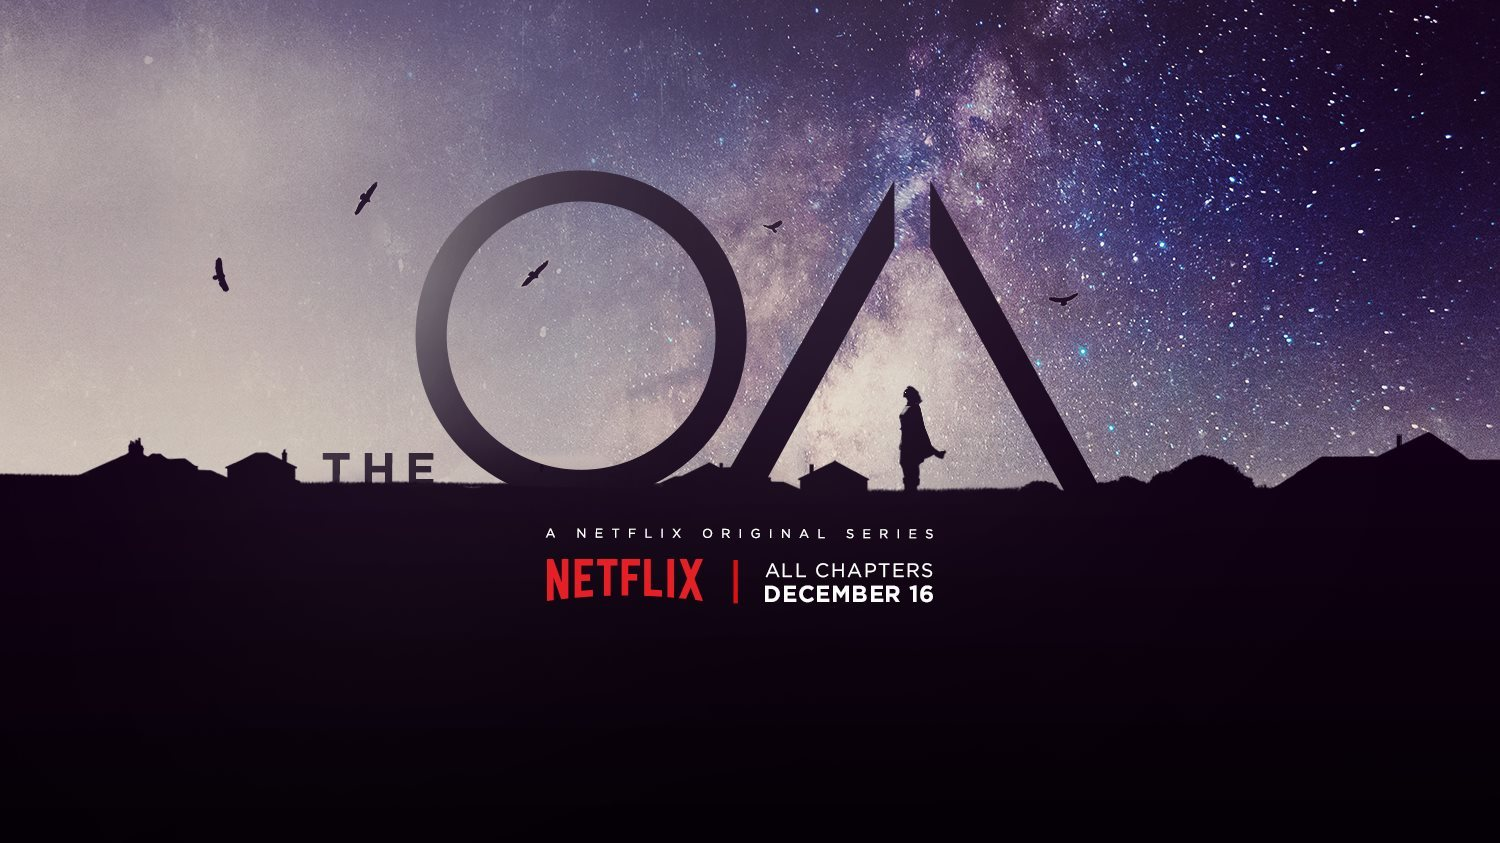 The OA Season 2 will involve the Golden Gate Bridge